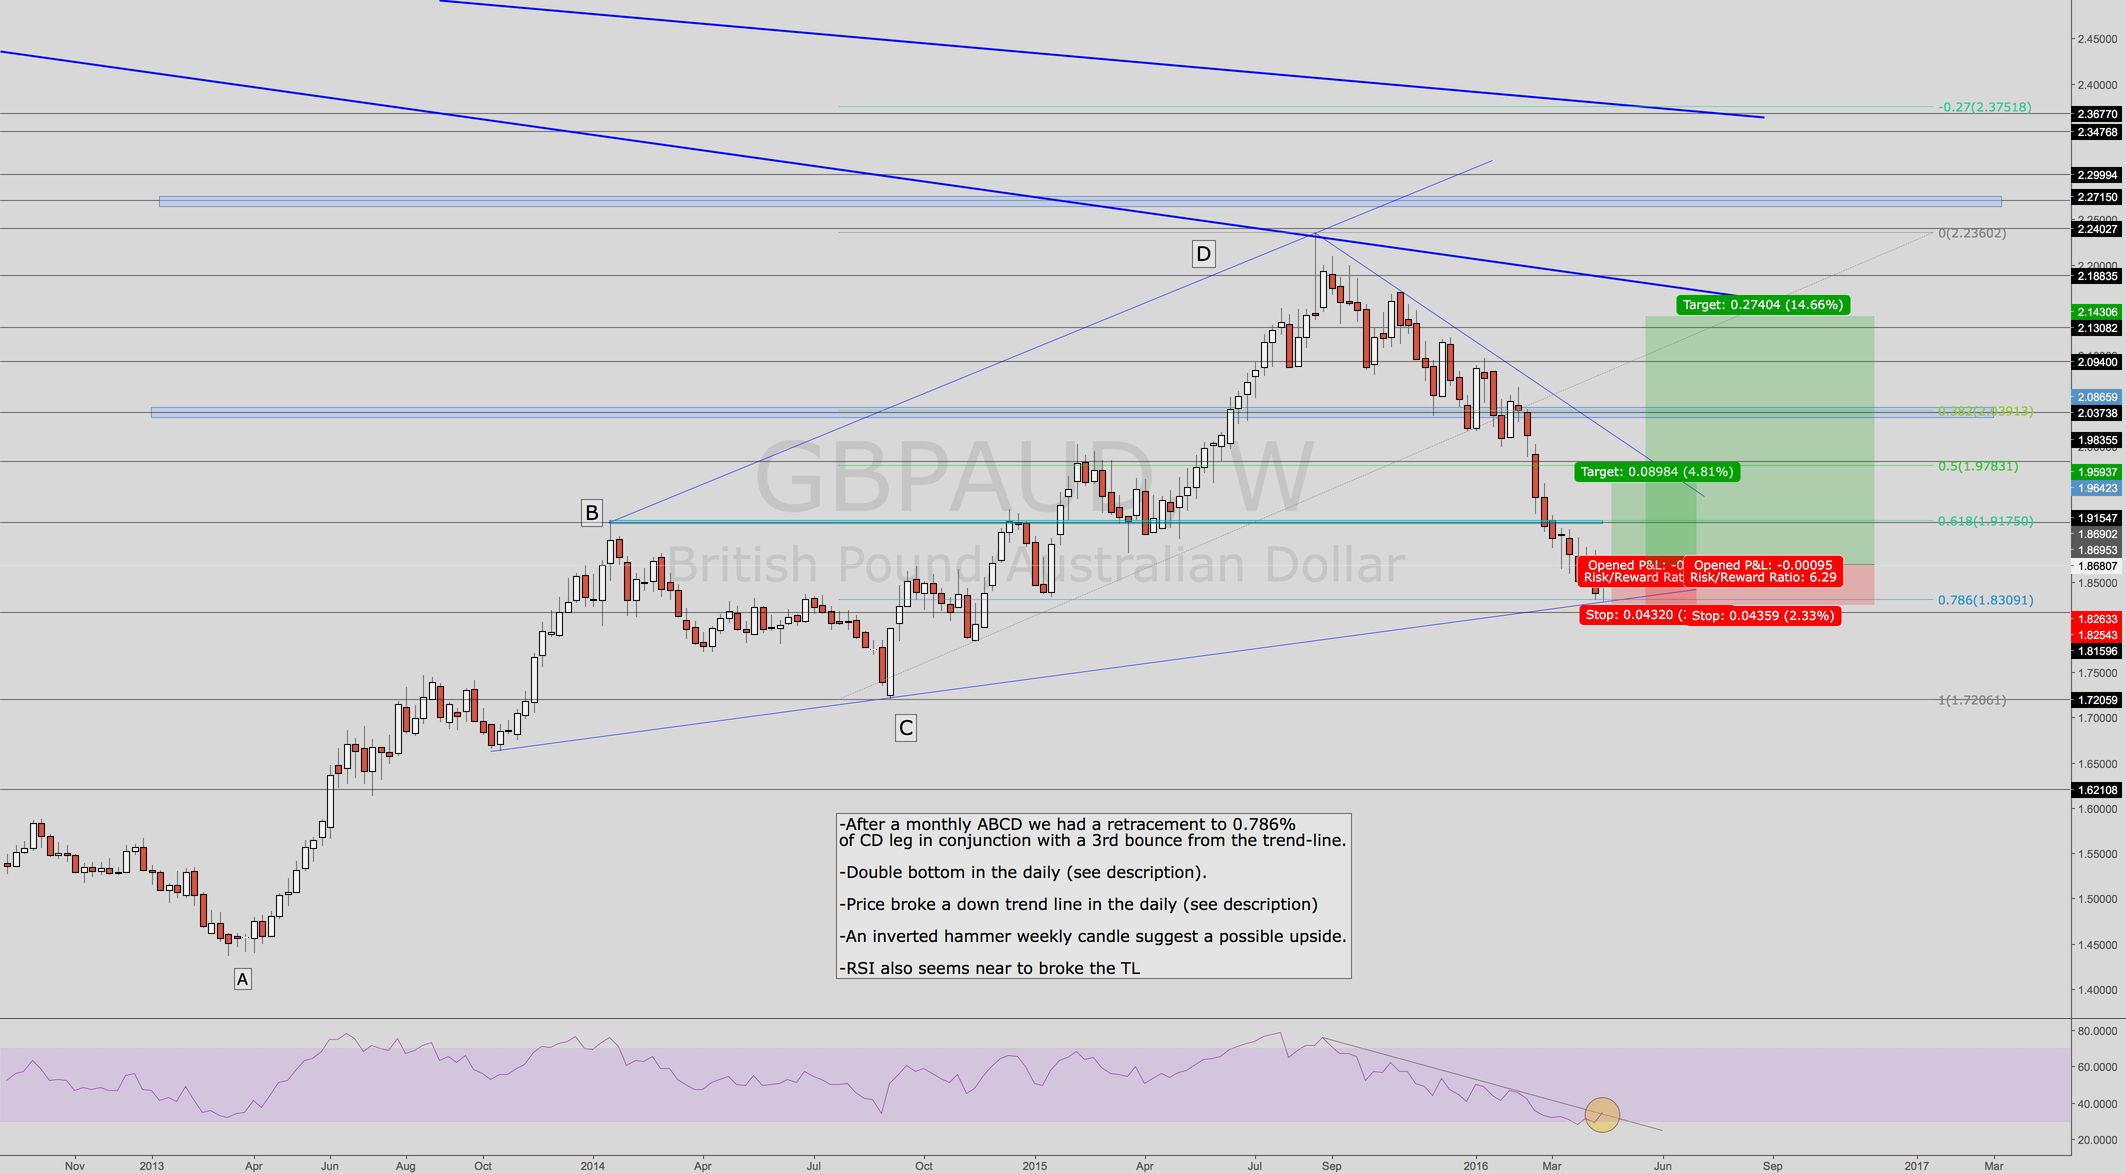 GBPAUD Key level reached!